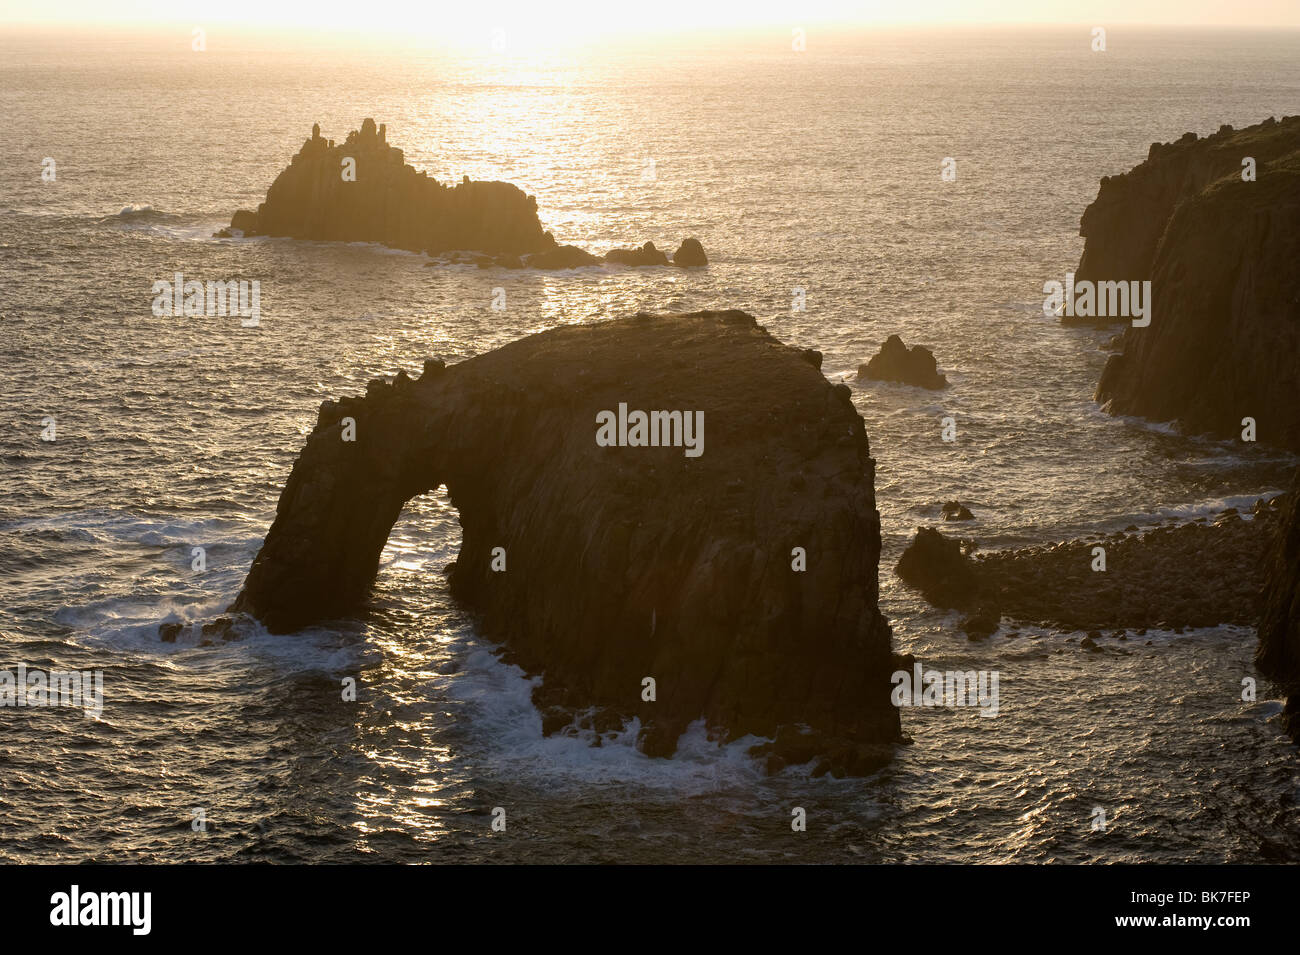 Lands end in cornwall - Stock Image